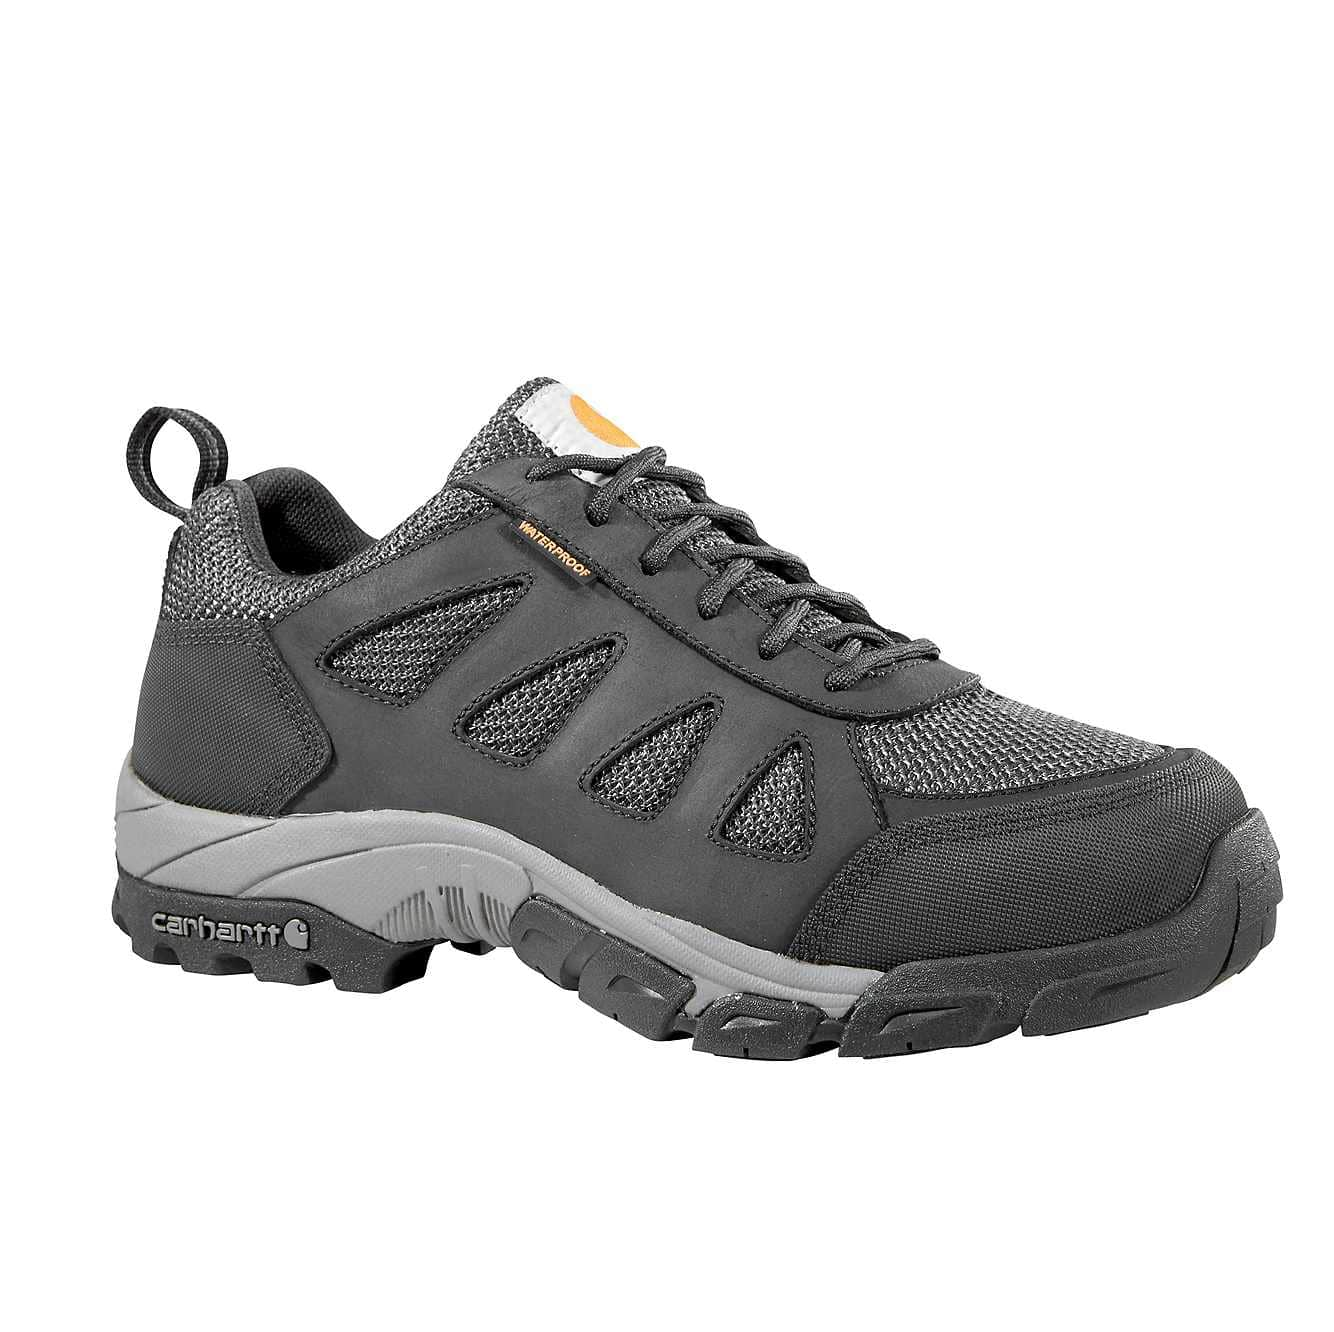 Picture of Lightweight Low Carbon Nano Toe Work Hiker in Black Leather and Nylon